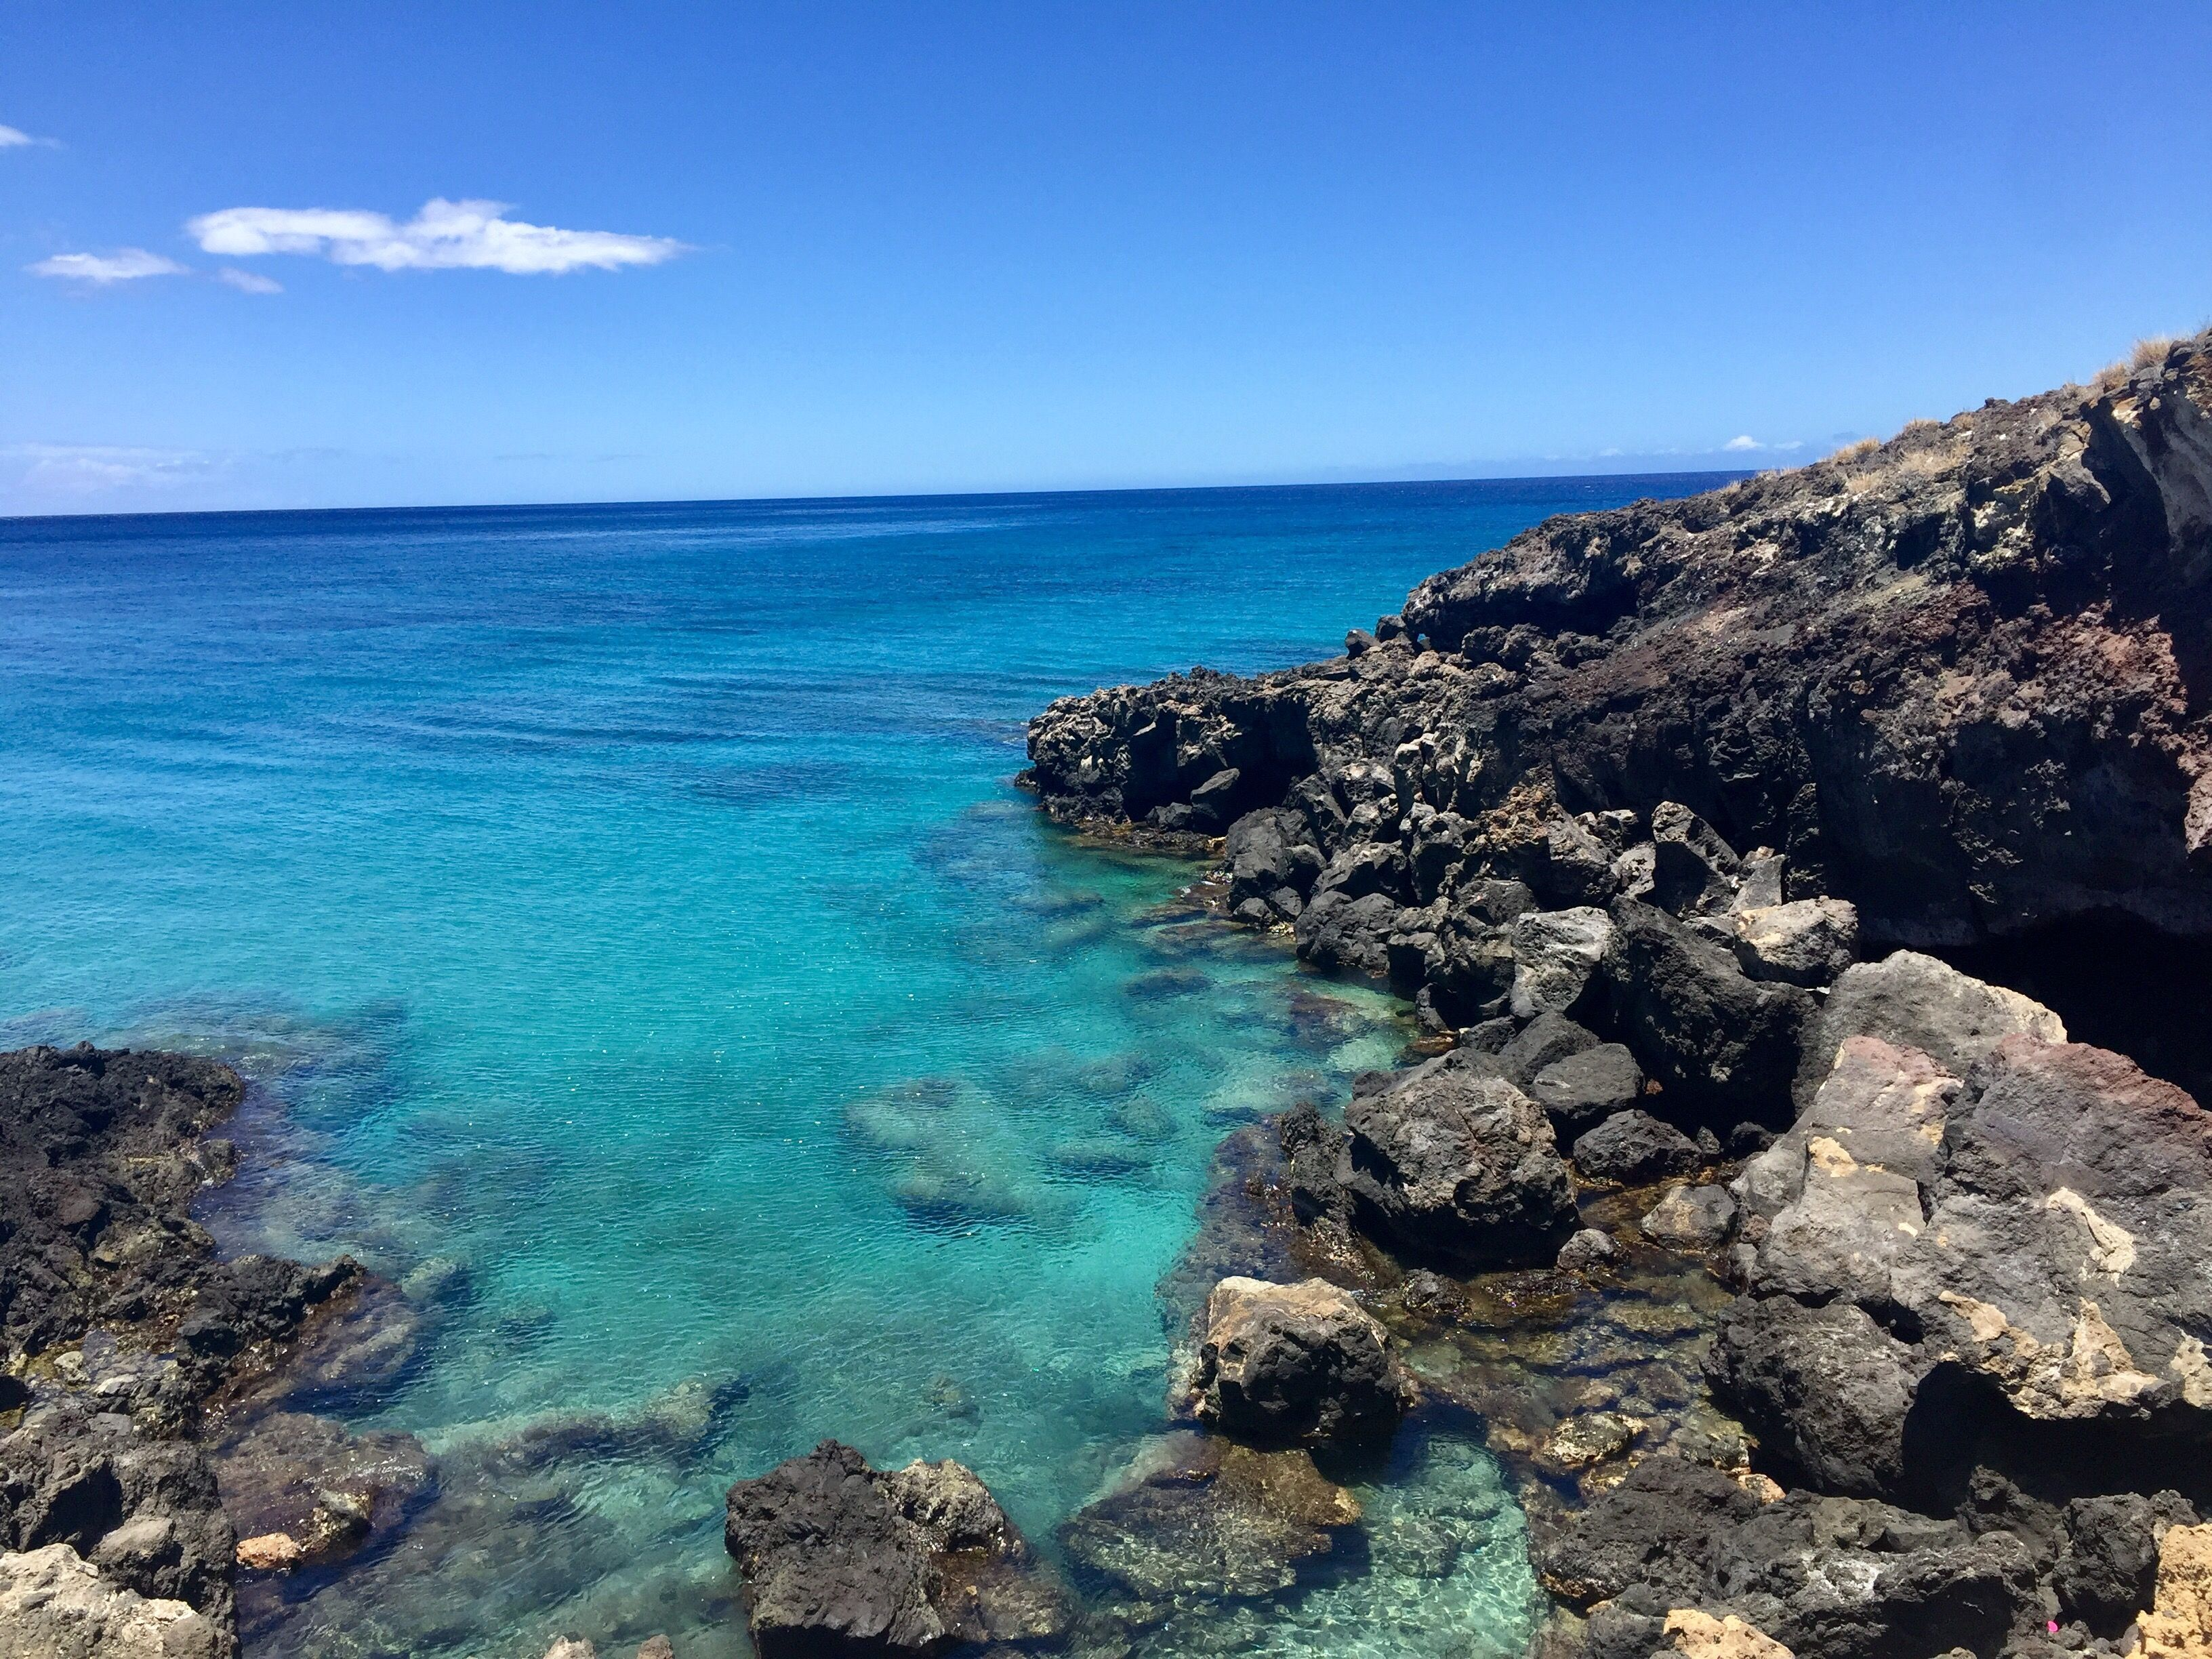 Take Me To #snorkel #paradise! Where Will You #weekend